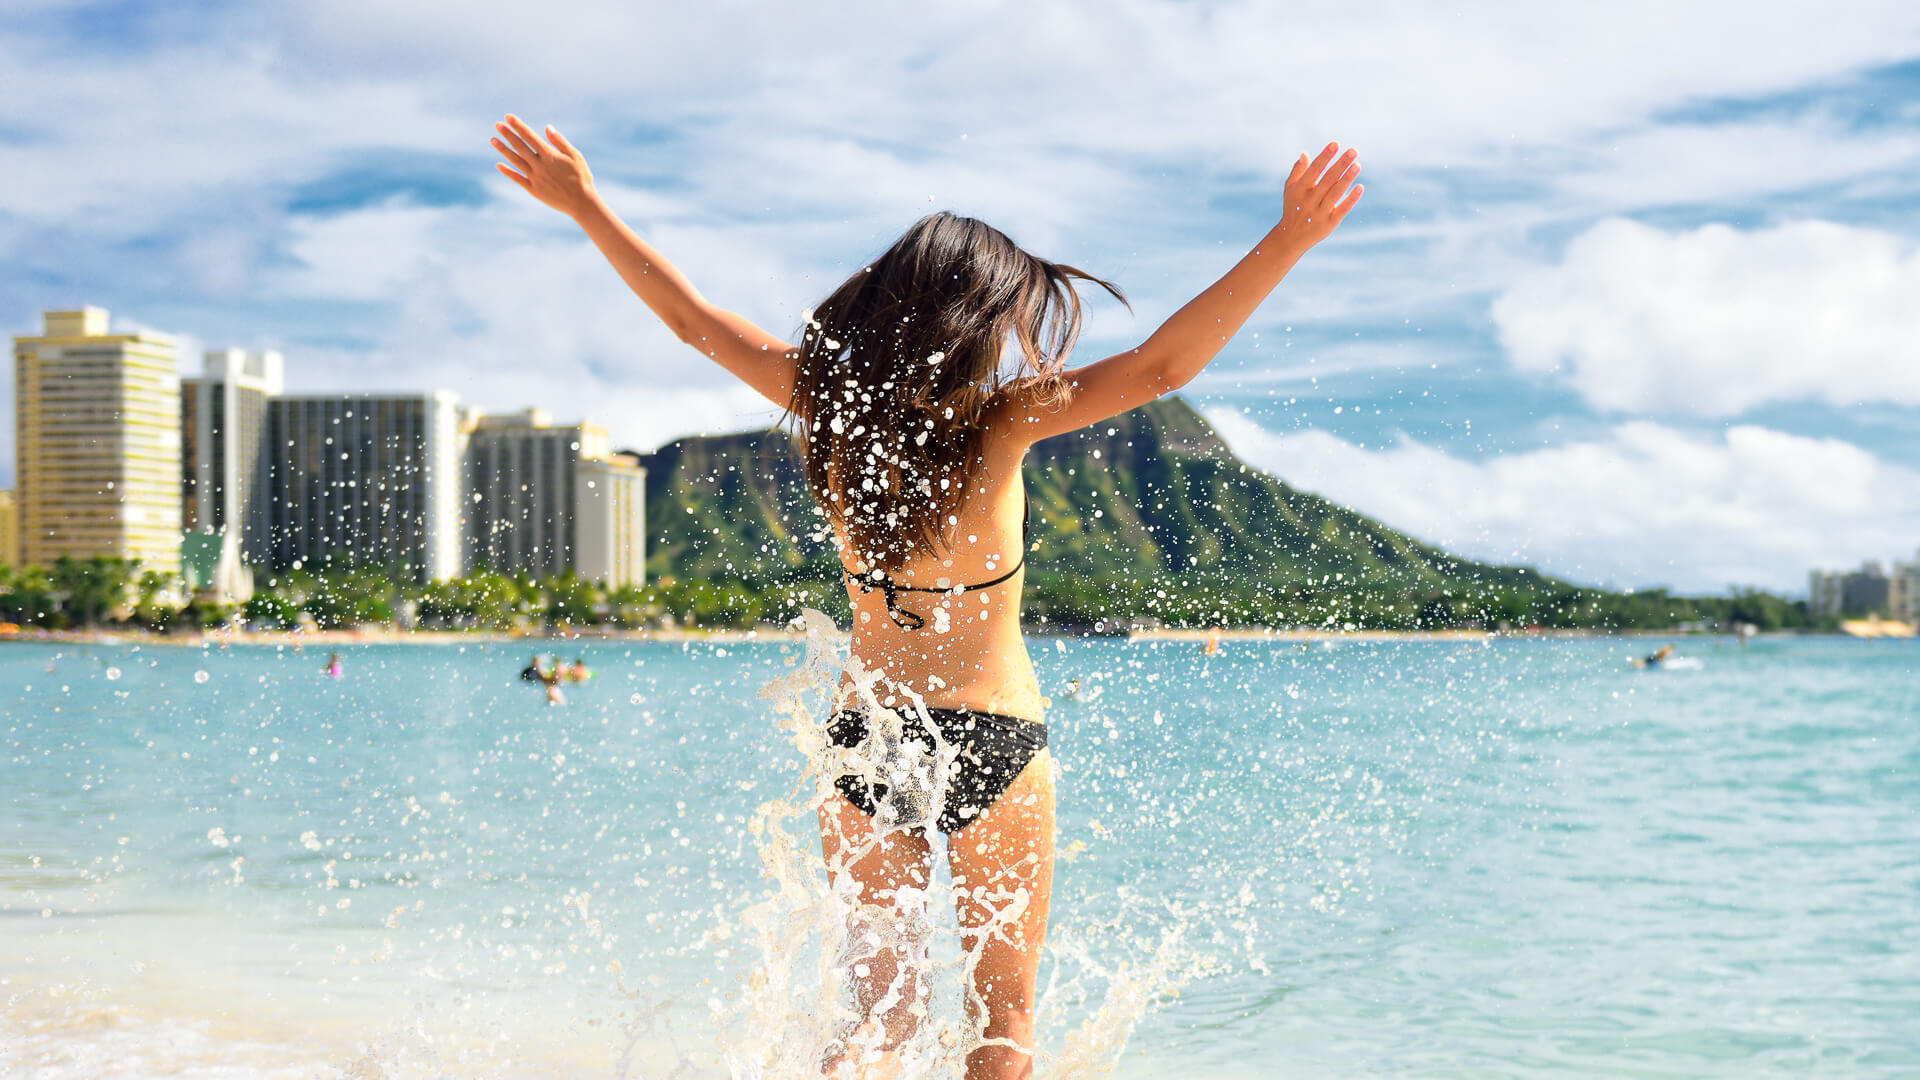 Whether you're dreaming of traveling to Hawaii's tropical paradise for the first time or you're an old hand at visiting the islands, insider tips make the difference between the typical tourist trip to Hawaii and a truly amazing adventure. GOBankingRates talked to Hawaii natives and travel experts to uncover some of the top tips to keep in mind when planning your vacation.Click through to find the best and worst deals in Hawaii that'll make your vacation a trip to remember.